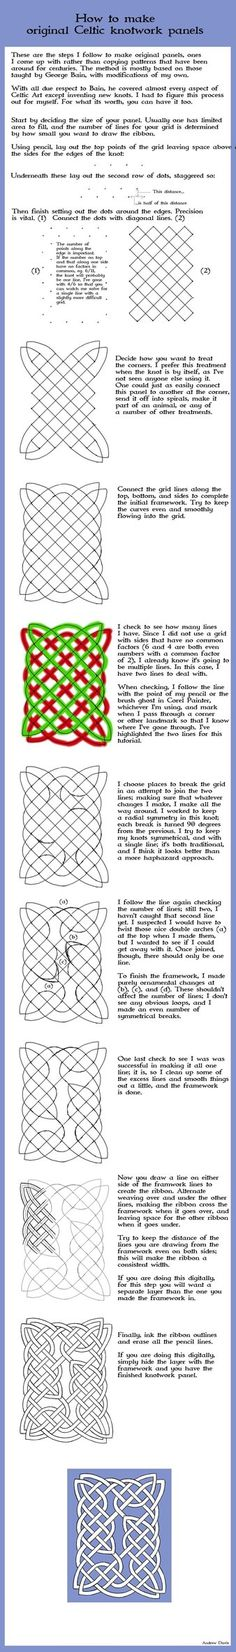 Celtic Tutorial 2 by *Dweran on deviantART